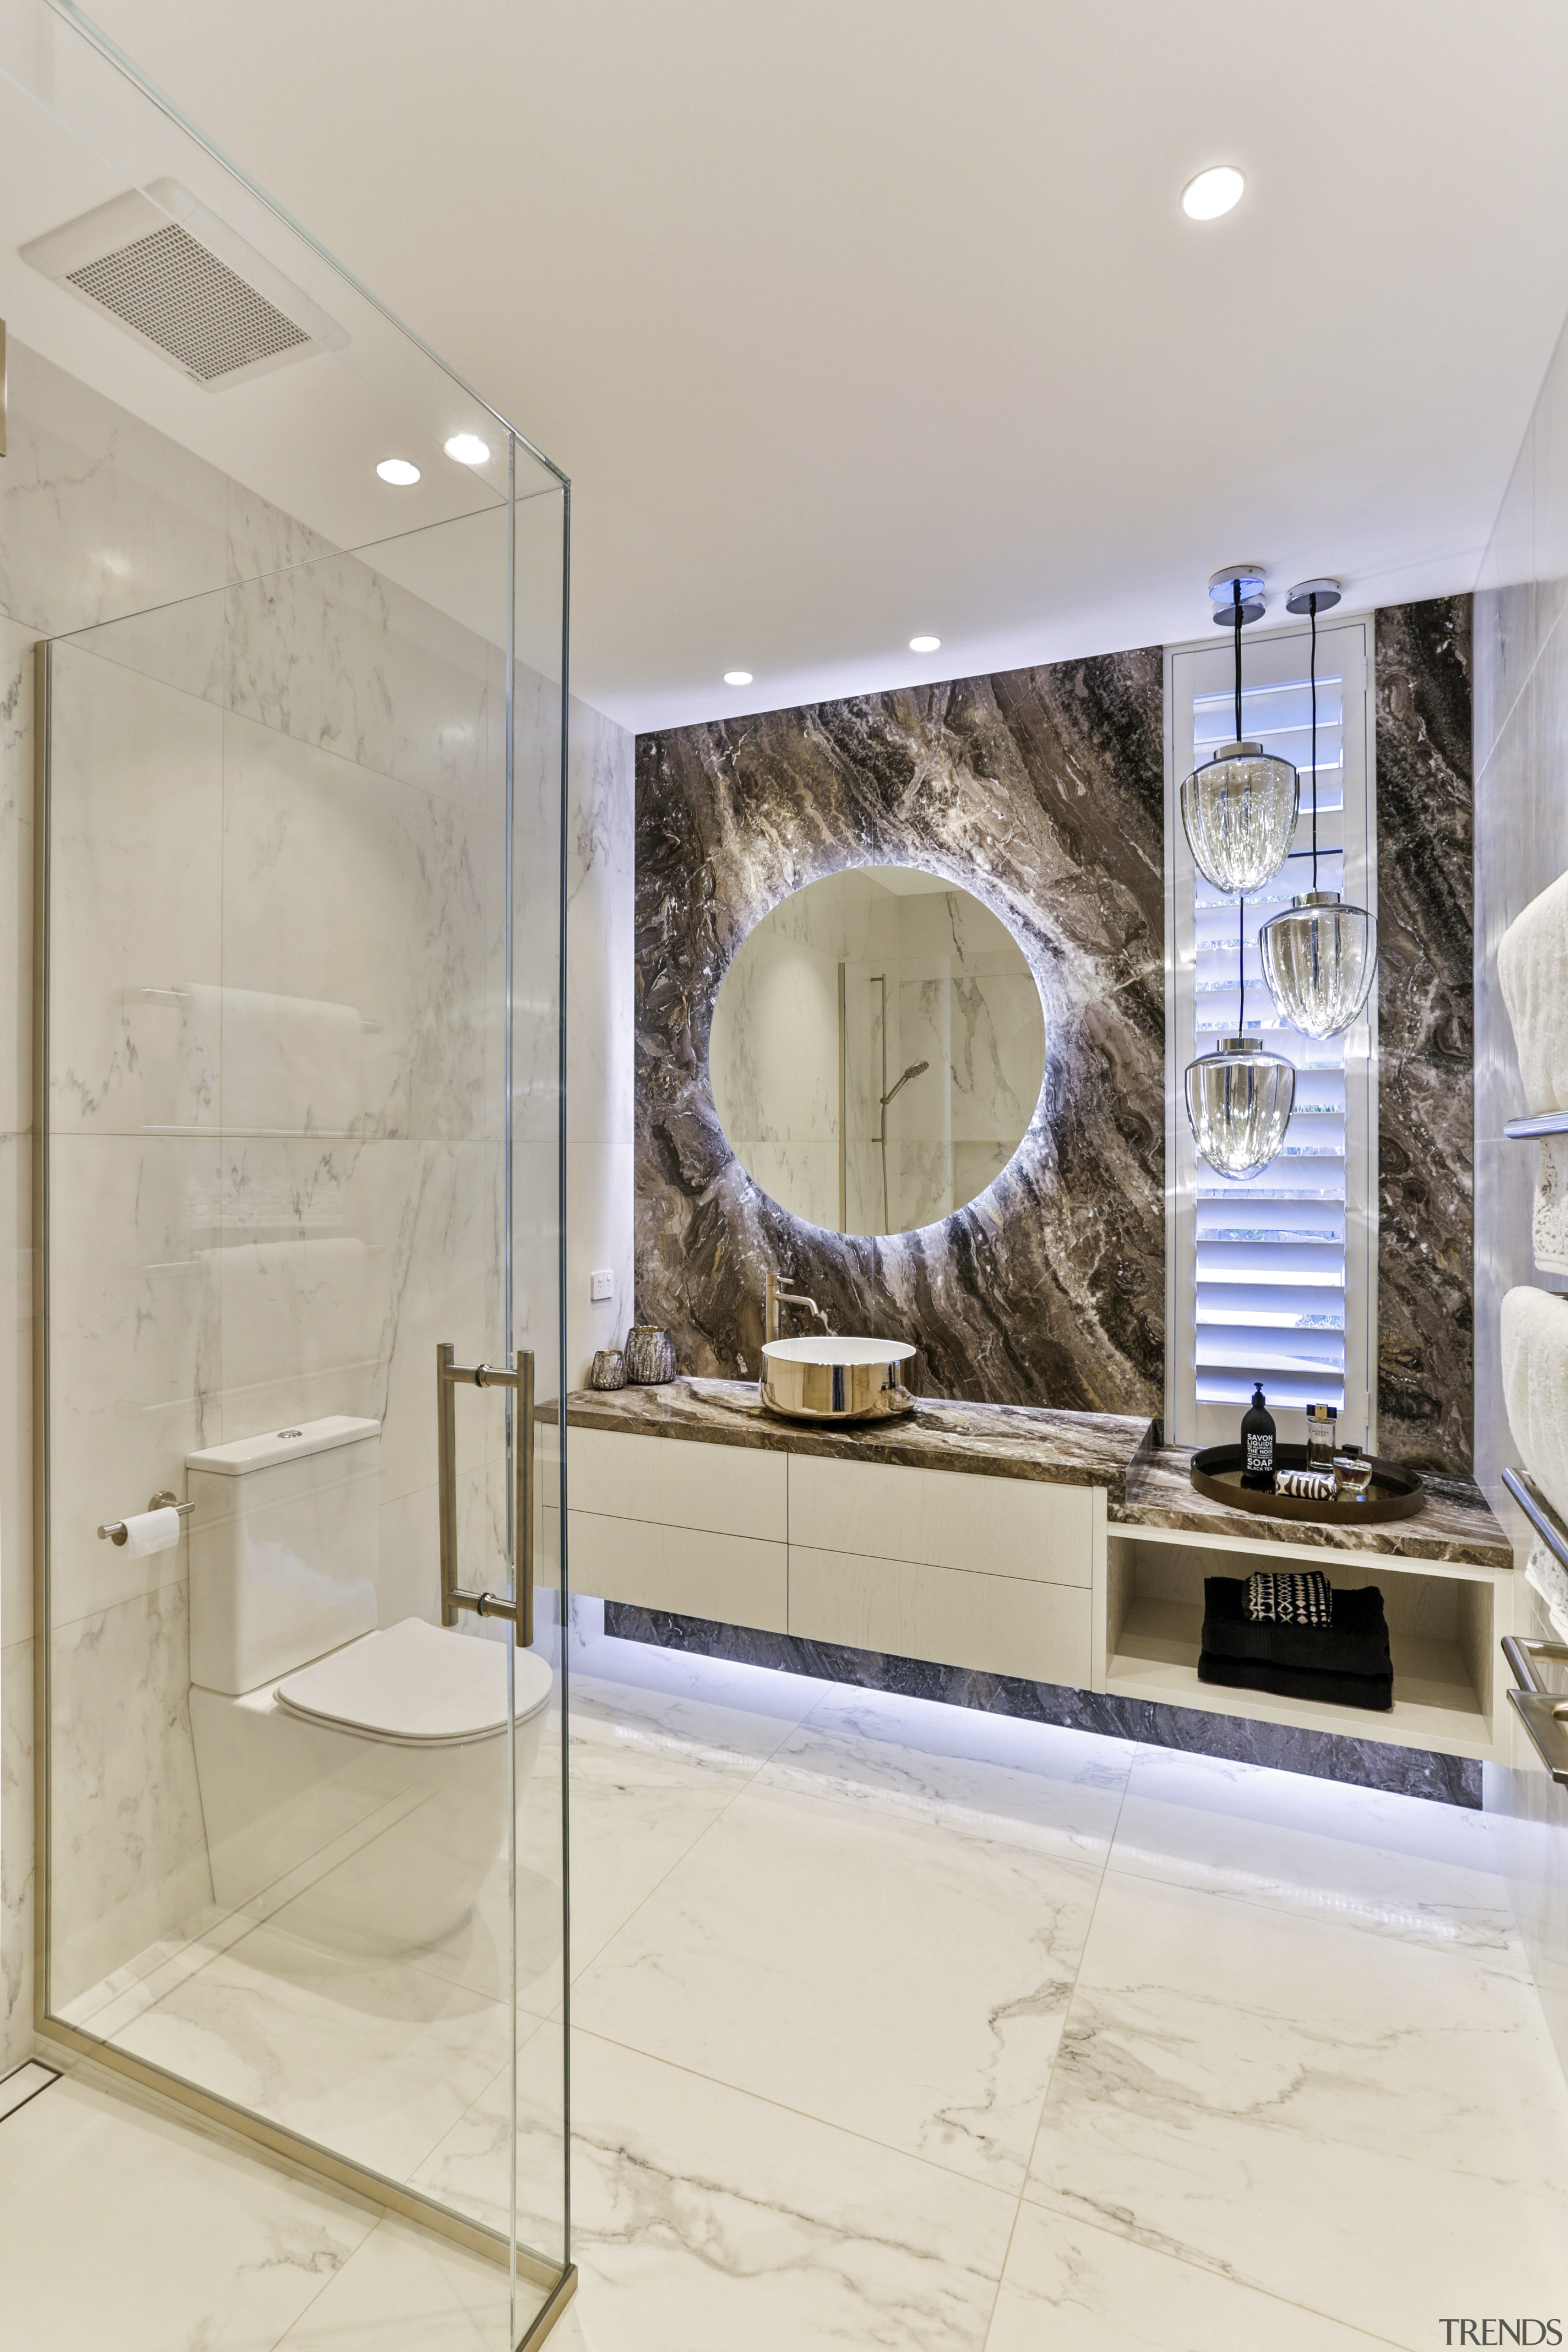 A large backlit mirror throws an eye-catching pattern gray